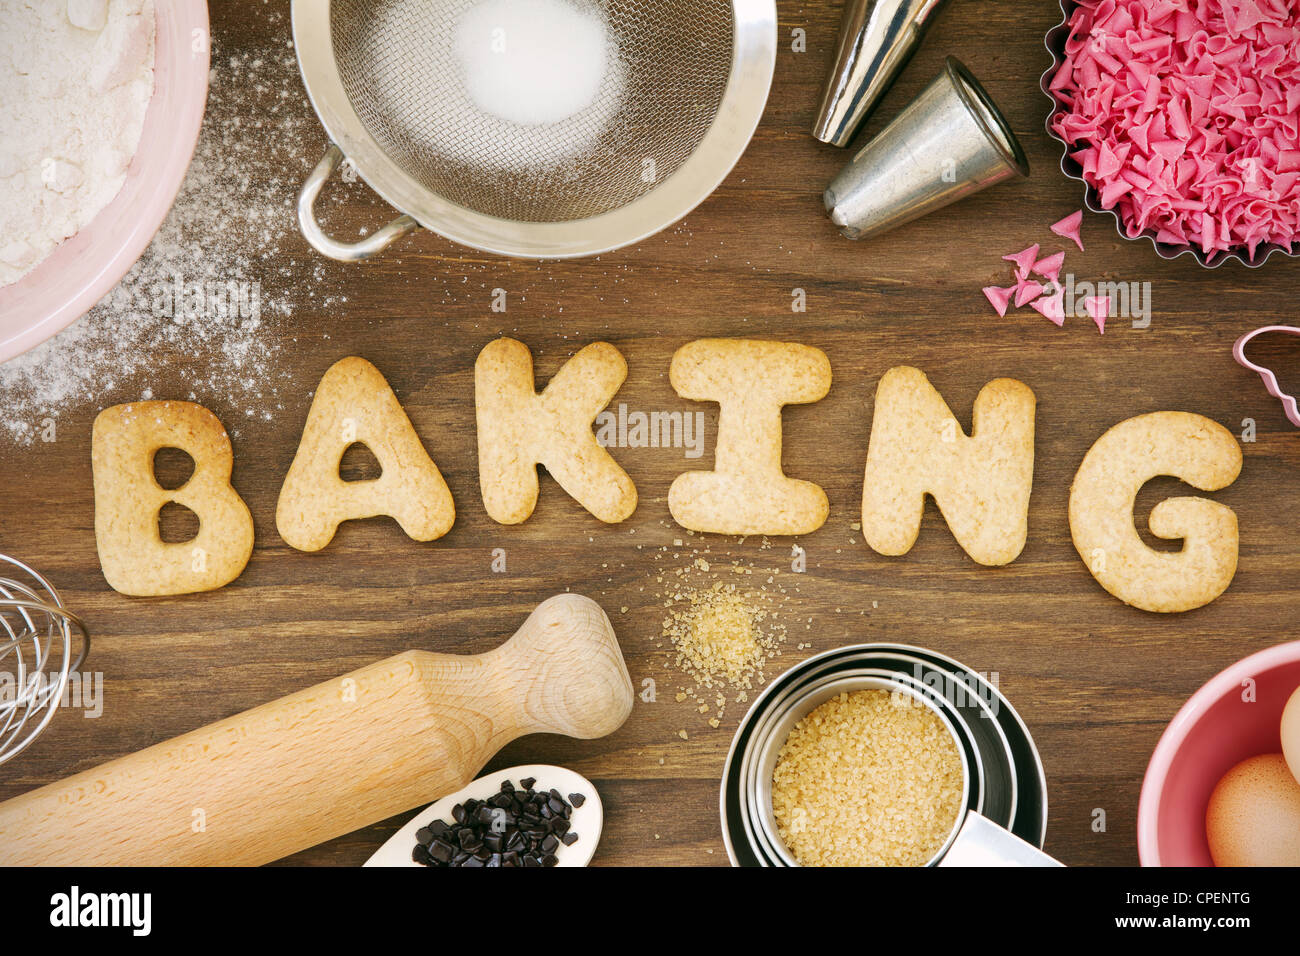 Baking cookies - Stock Image